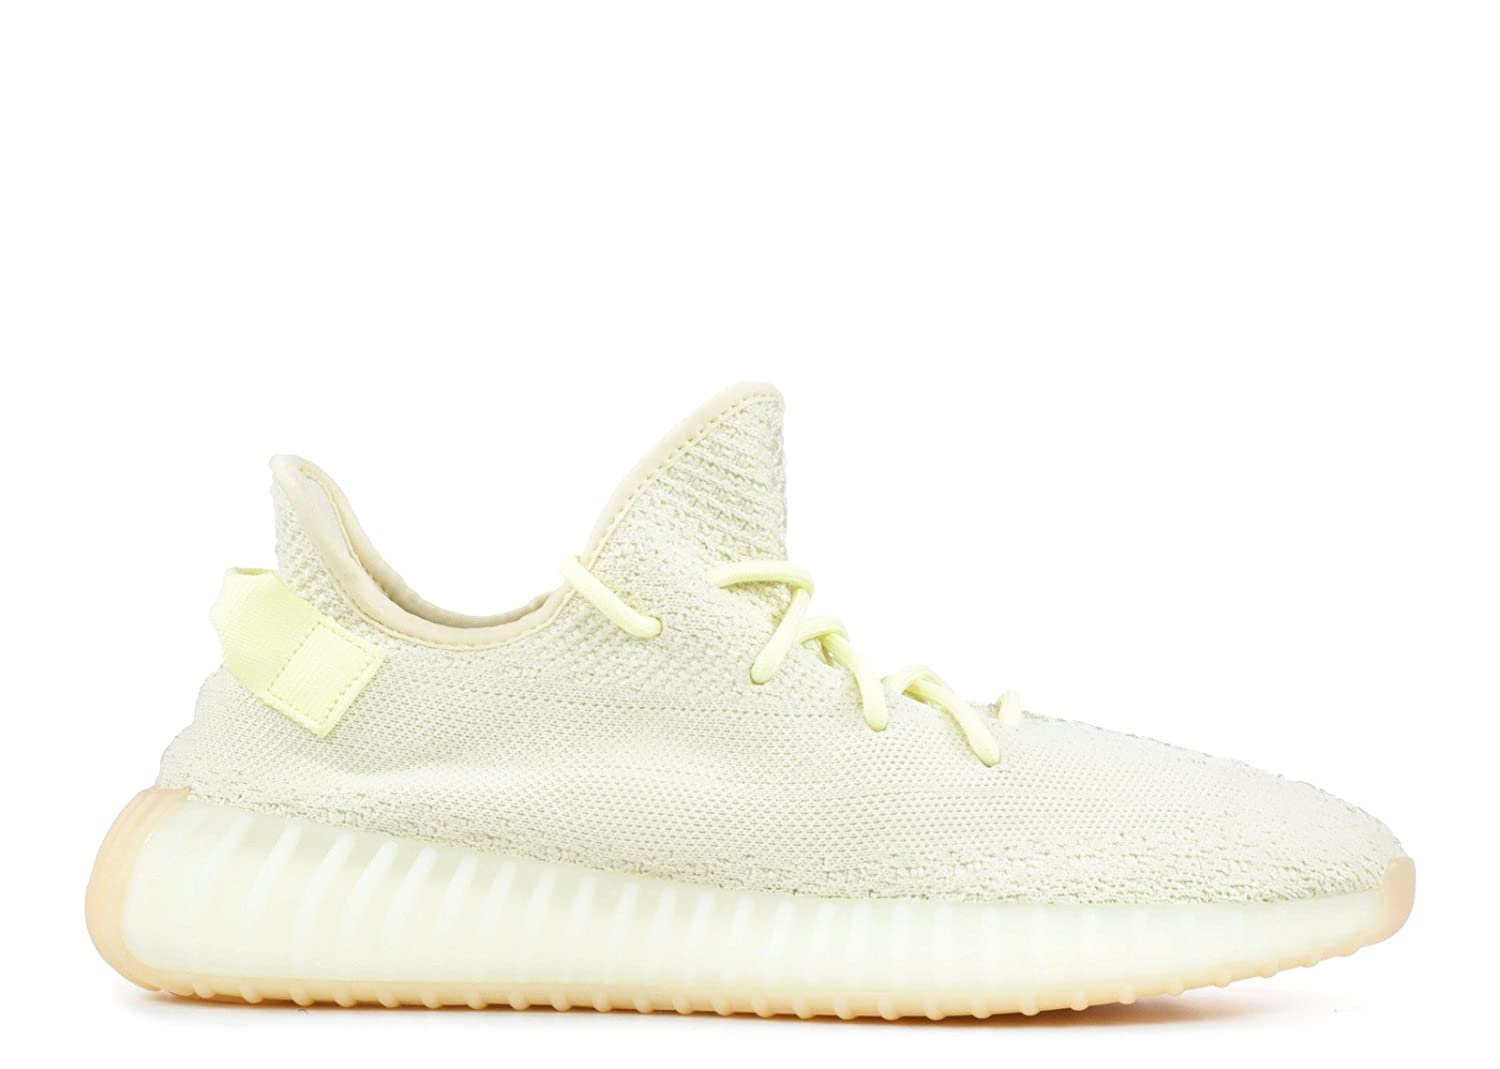 quality design 8290d 1b78b adidas Yeezy Boost 350 V2 'Butter' - F36980 - Size 13.5